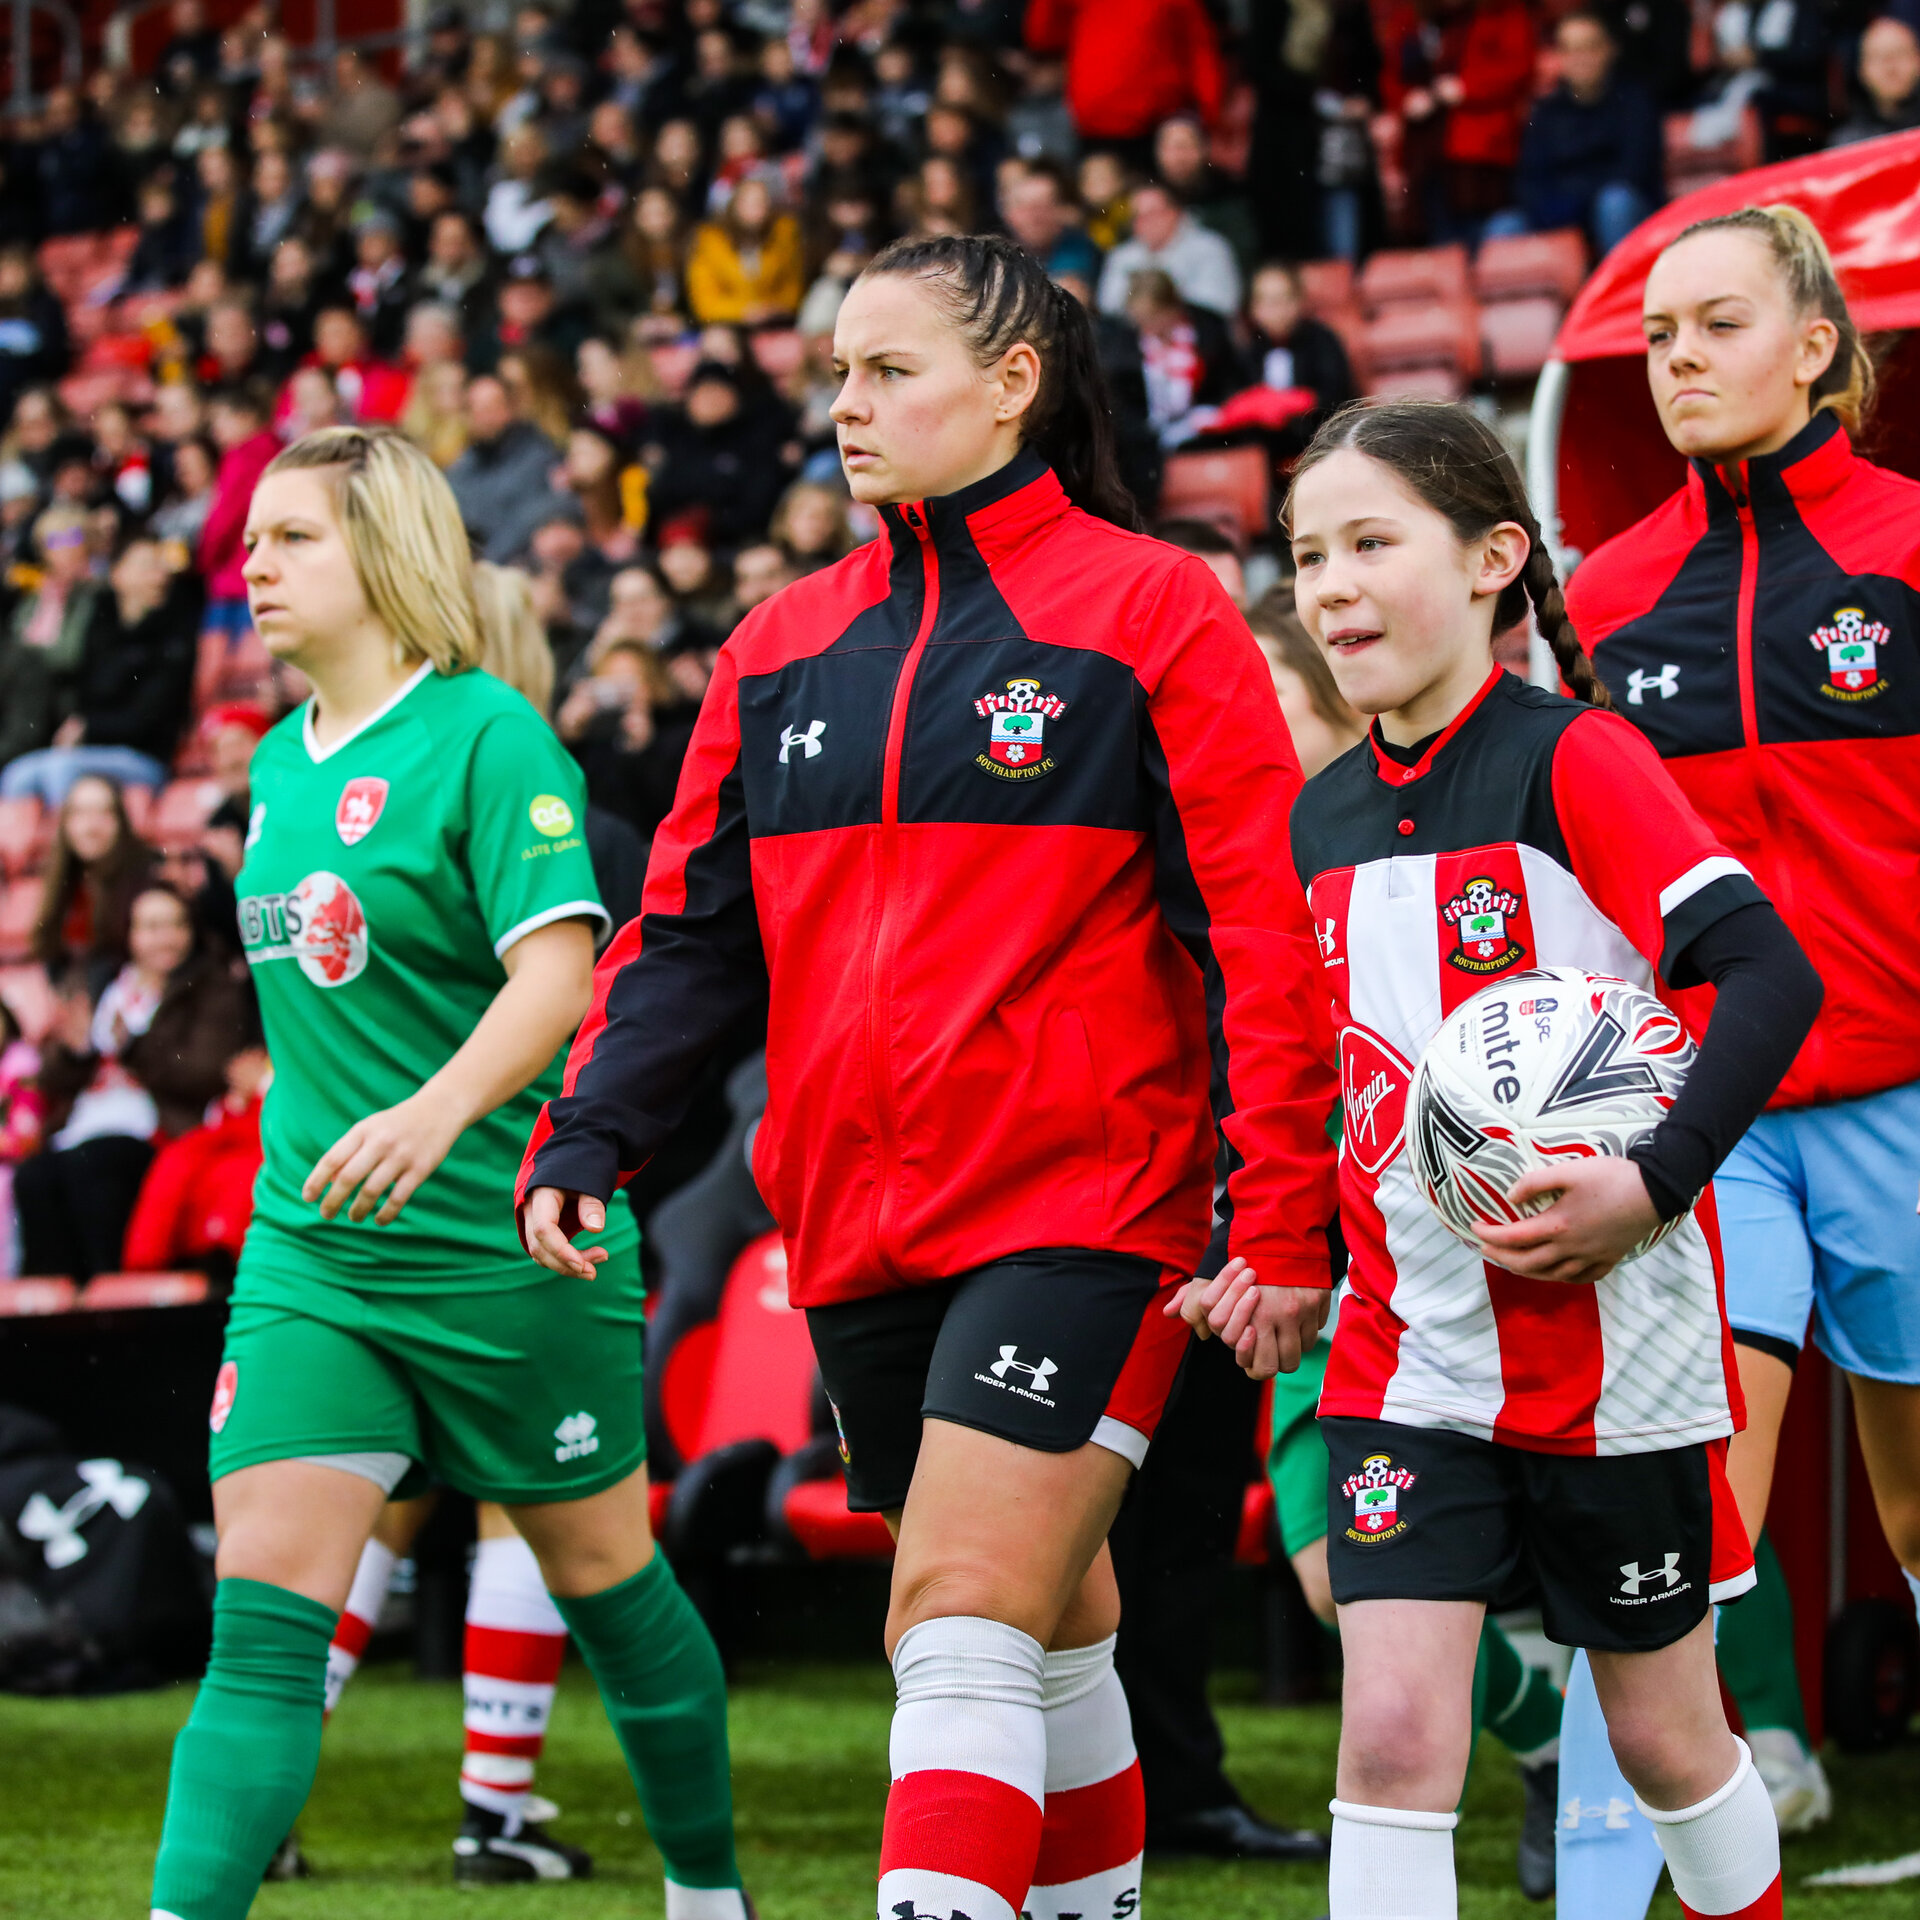 SOUTHAMPTON, ENGLAND - JANUARY 26: Shannon Sievwright of Southampton Womens FC walks out with a mascot during the Women's FA Cup Fourth Round match between Southampton Womens FC and Coventry United Ladies at St Mary's Stadium on January 26, 2020 in Southampton, England